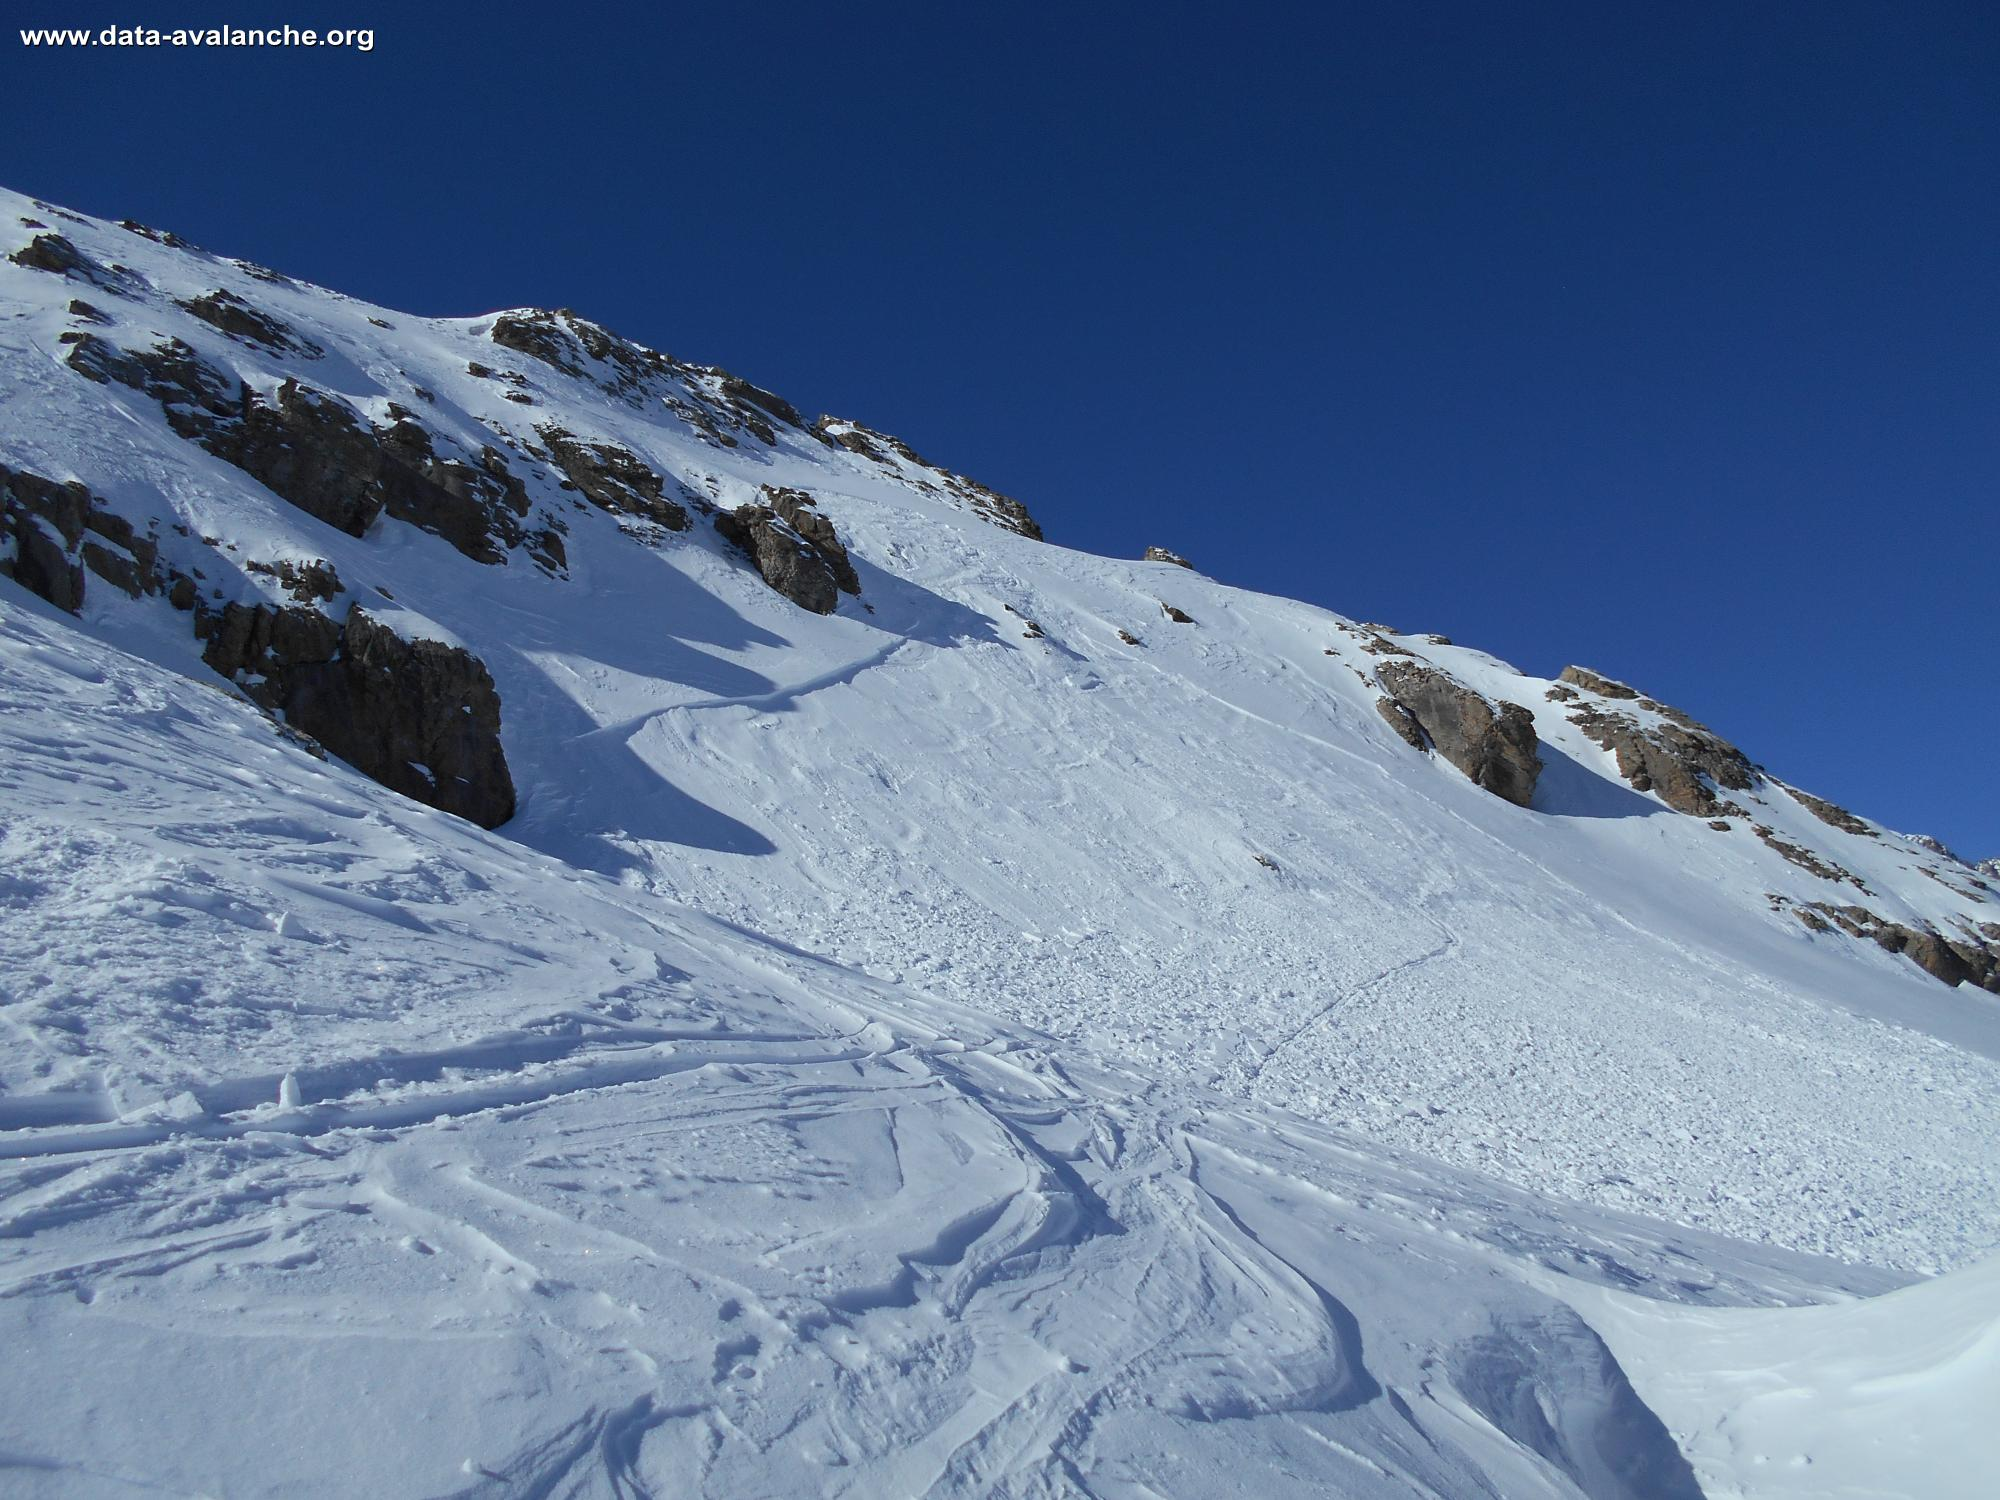 Avalanche Ecrins, secteur La Blanche, Vallouise - Photo 1 - © Berger Guillaume